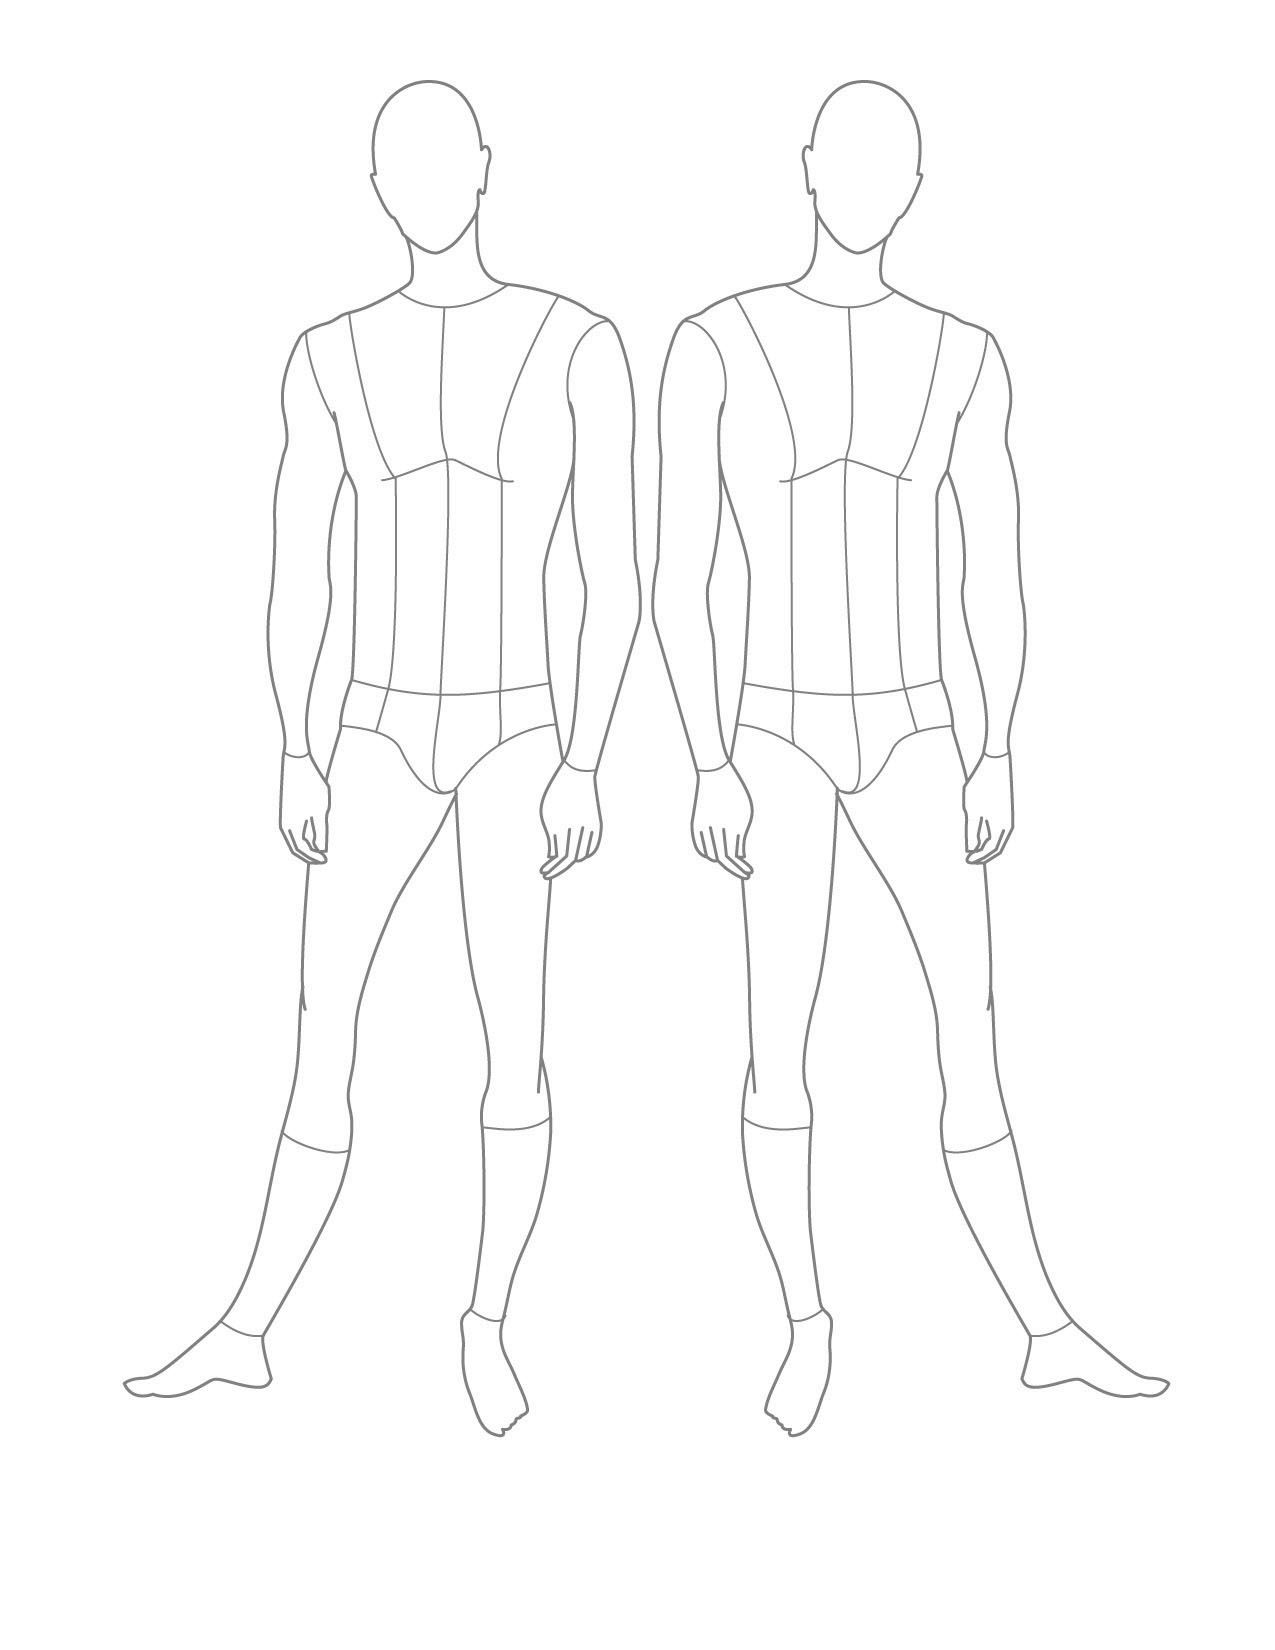 Images For > Costume Design Figure Template Fashion Design Template, Fashion Templates, Design